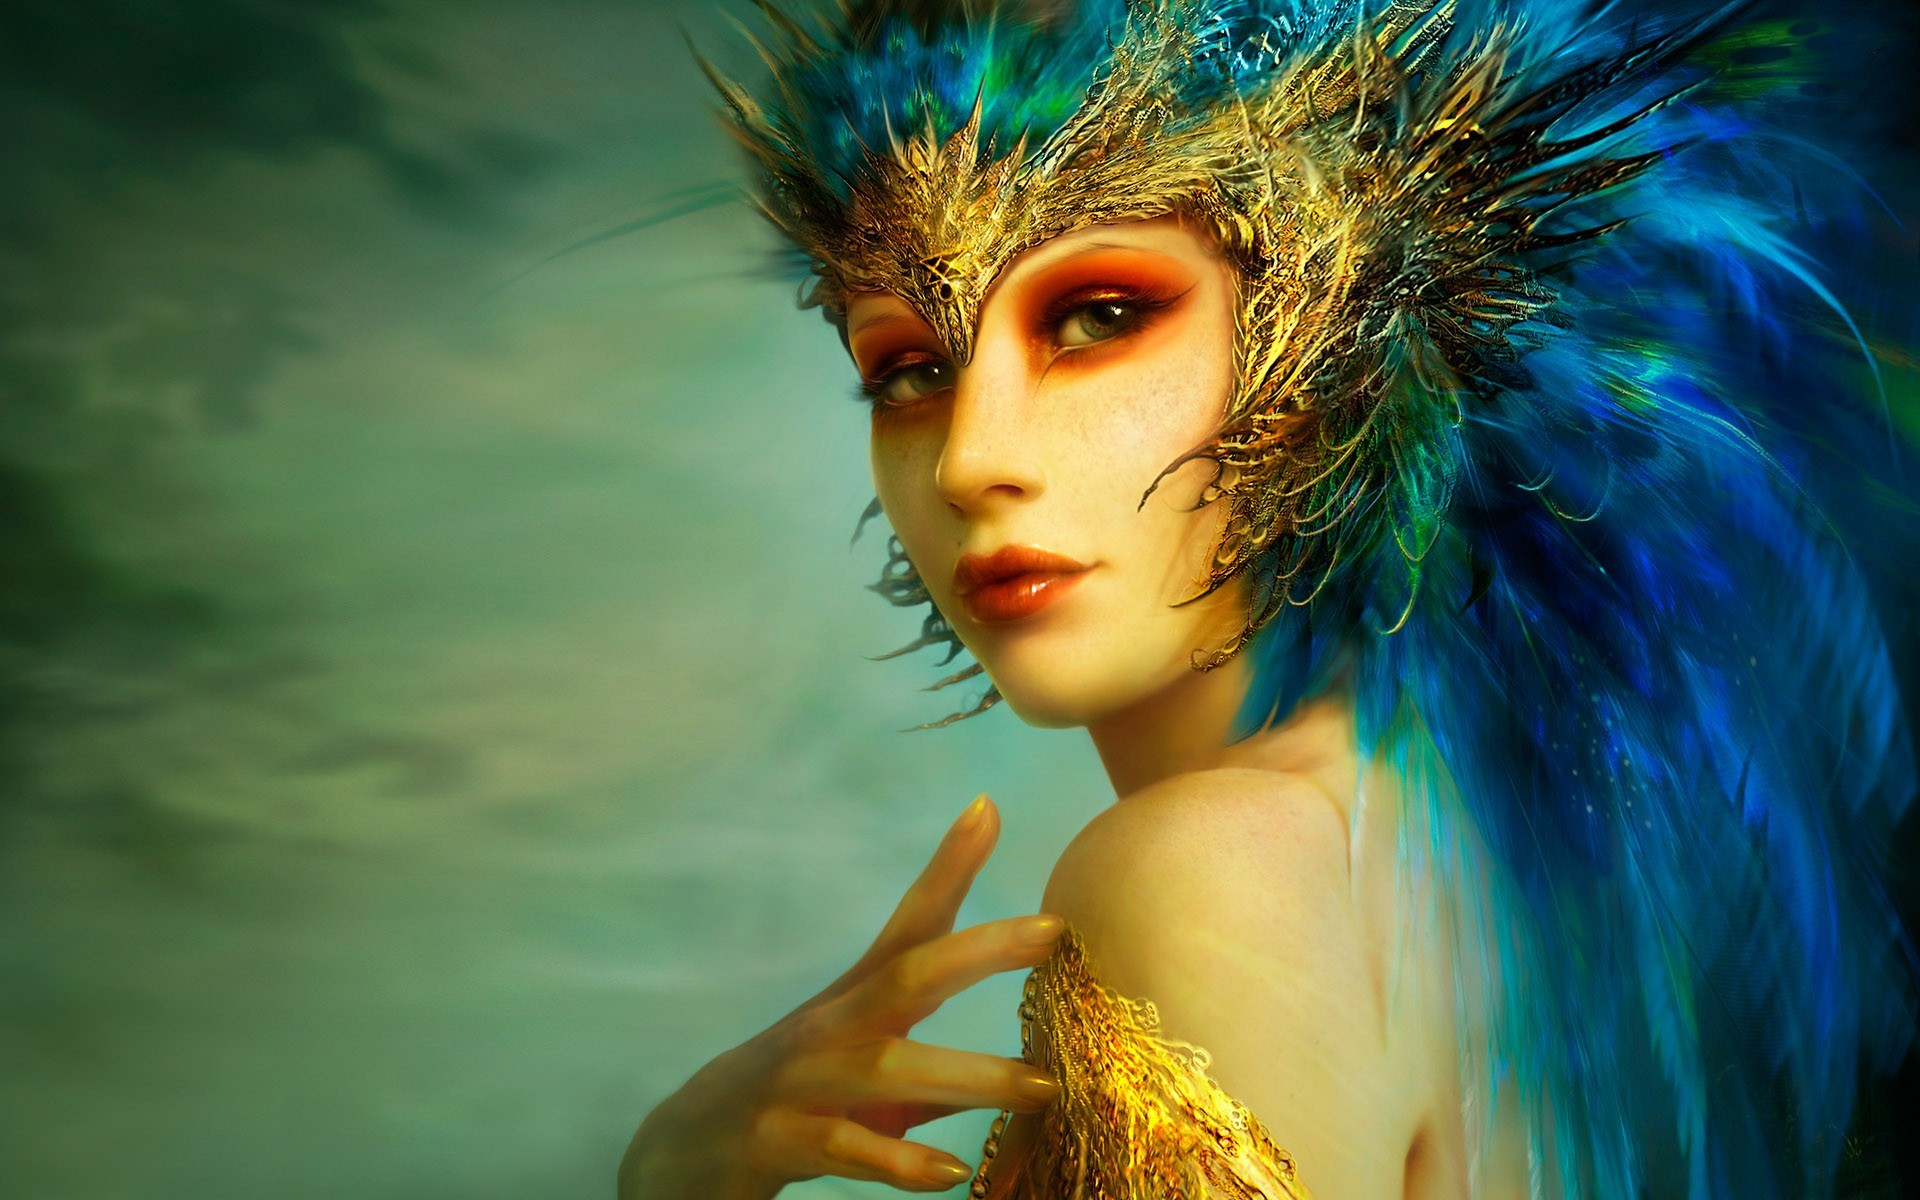 woman blue feathers fantasy HD Wallpaper